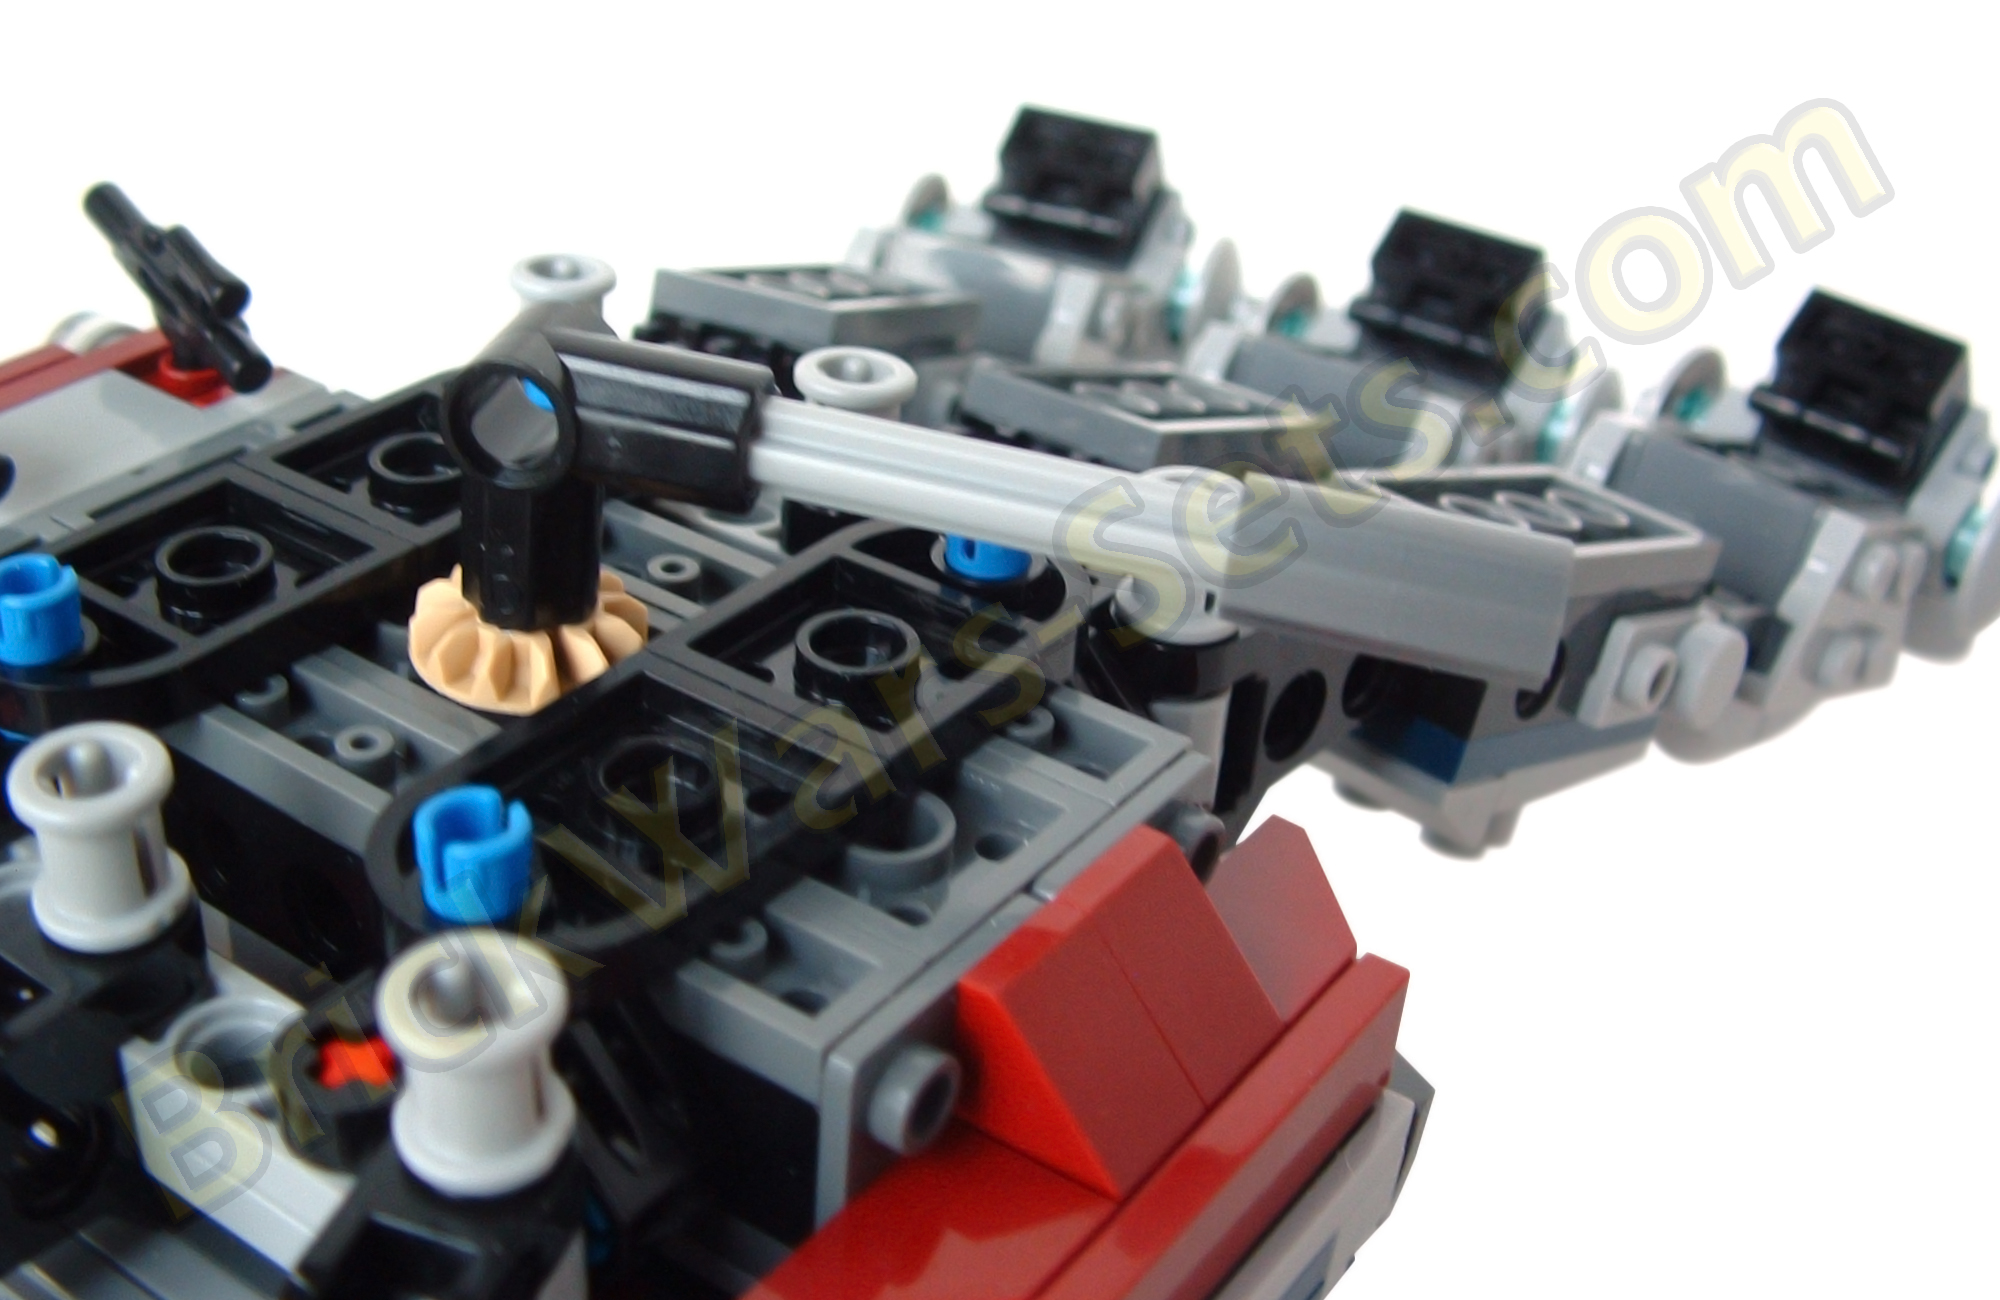 Lego 75013 Umbaran MHC (Mobile Heavy Cannon) - Cannon Lever